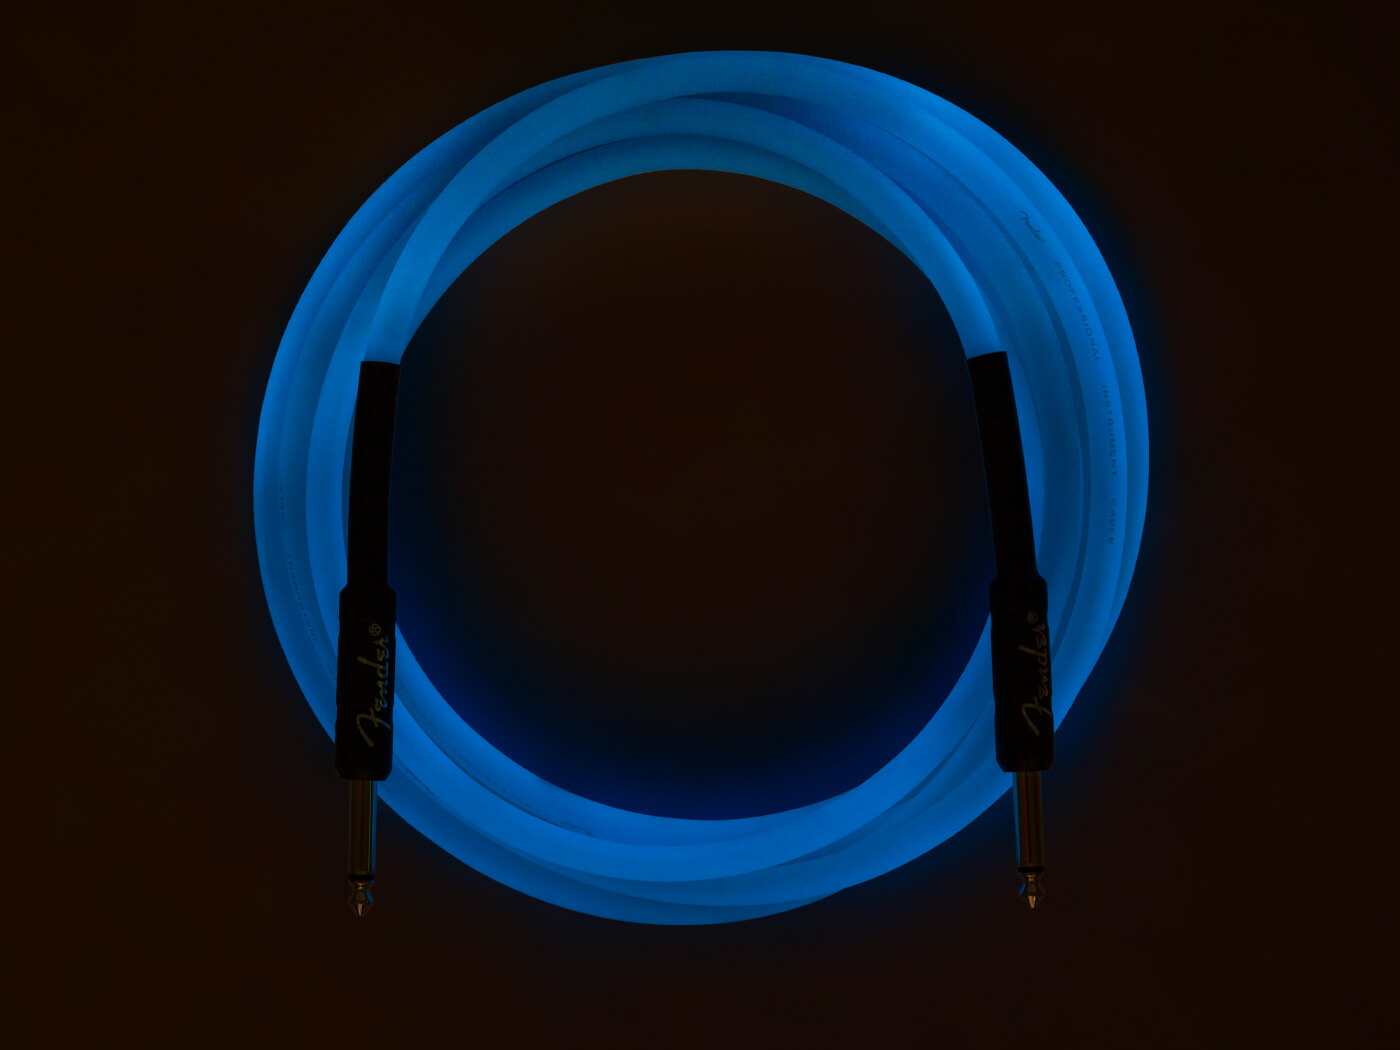 Fender Professional Glow In The Dark Cable